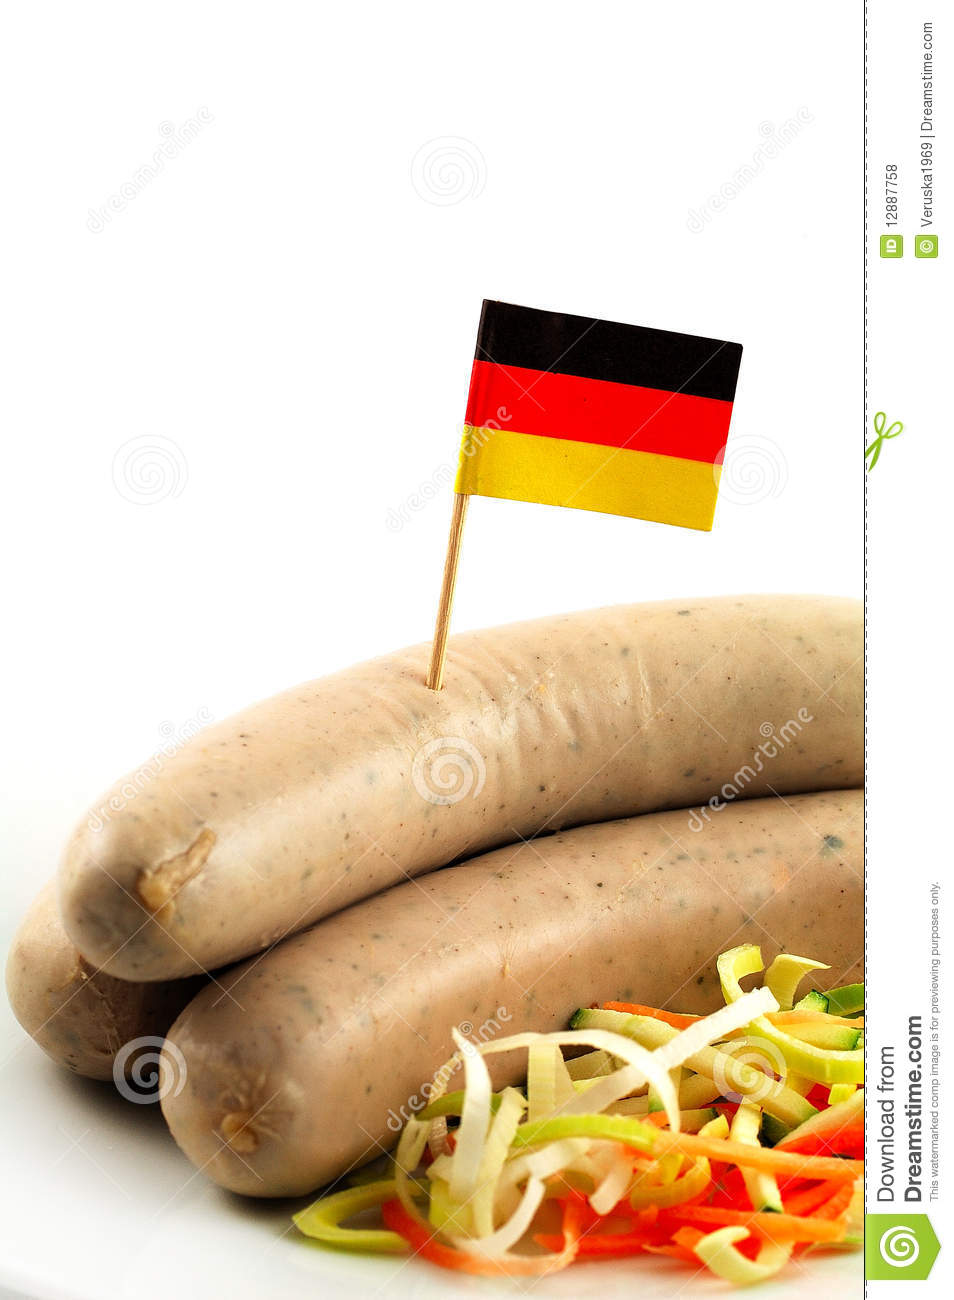 Sausage Royalty Free Stock Photos - Image: 12887758